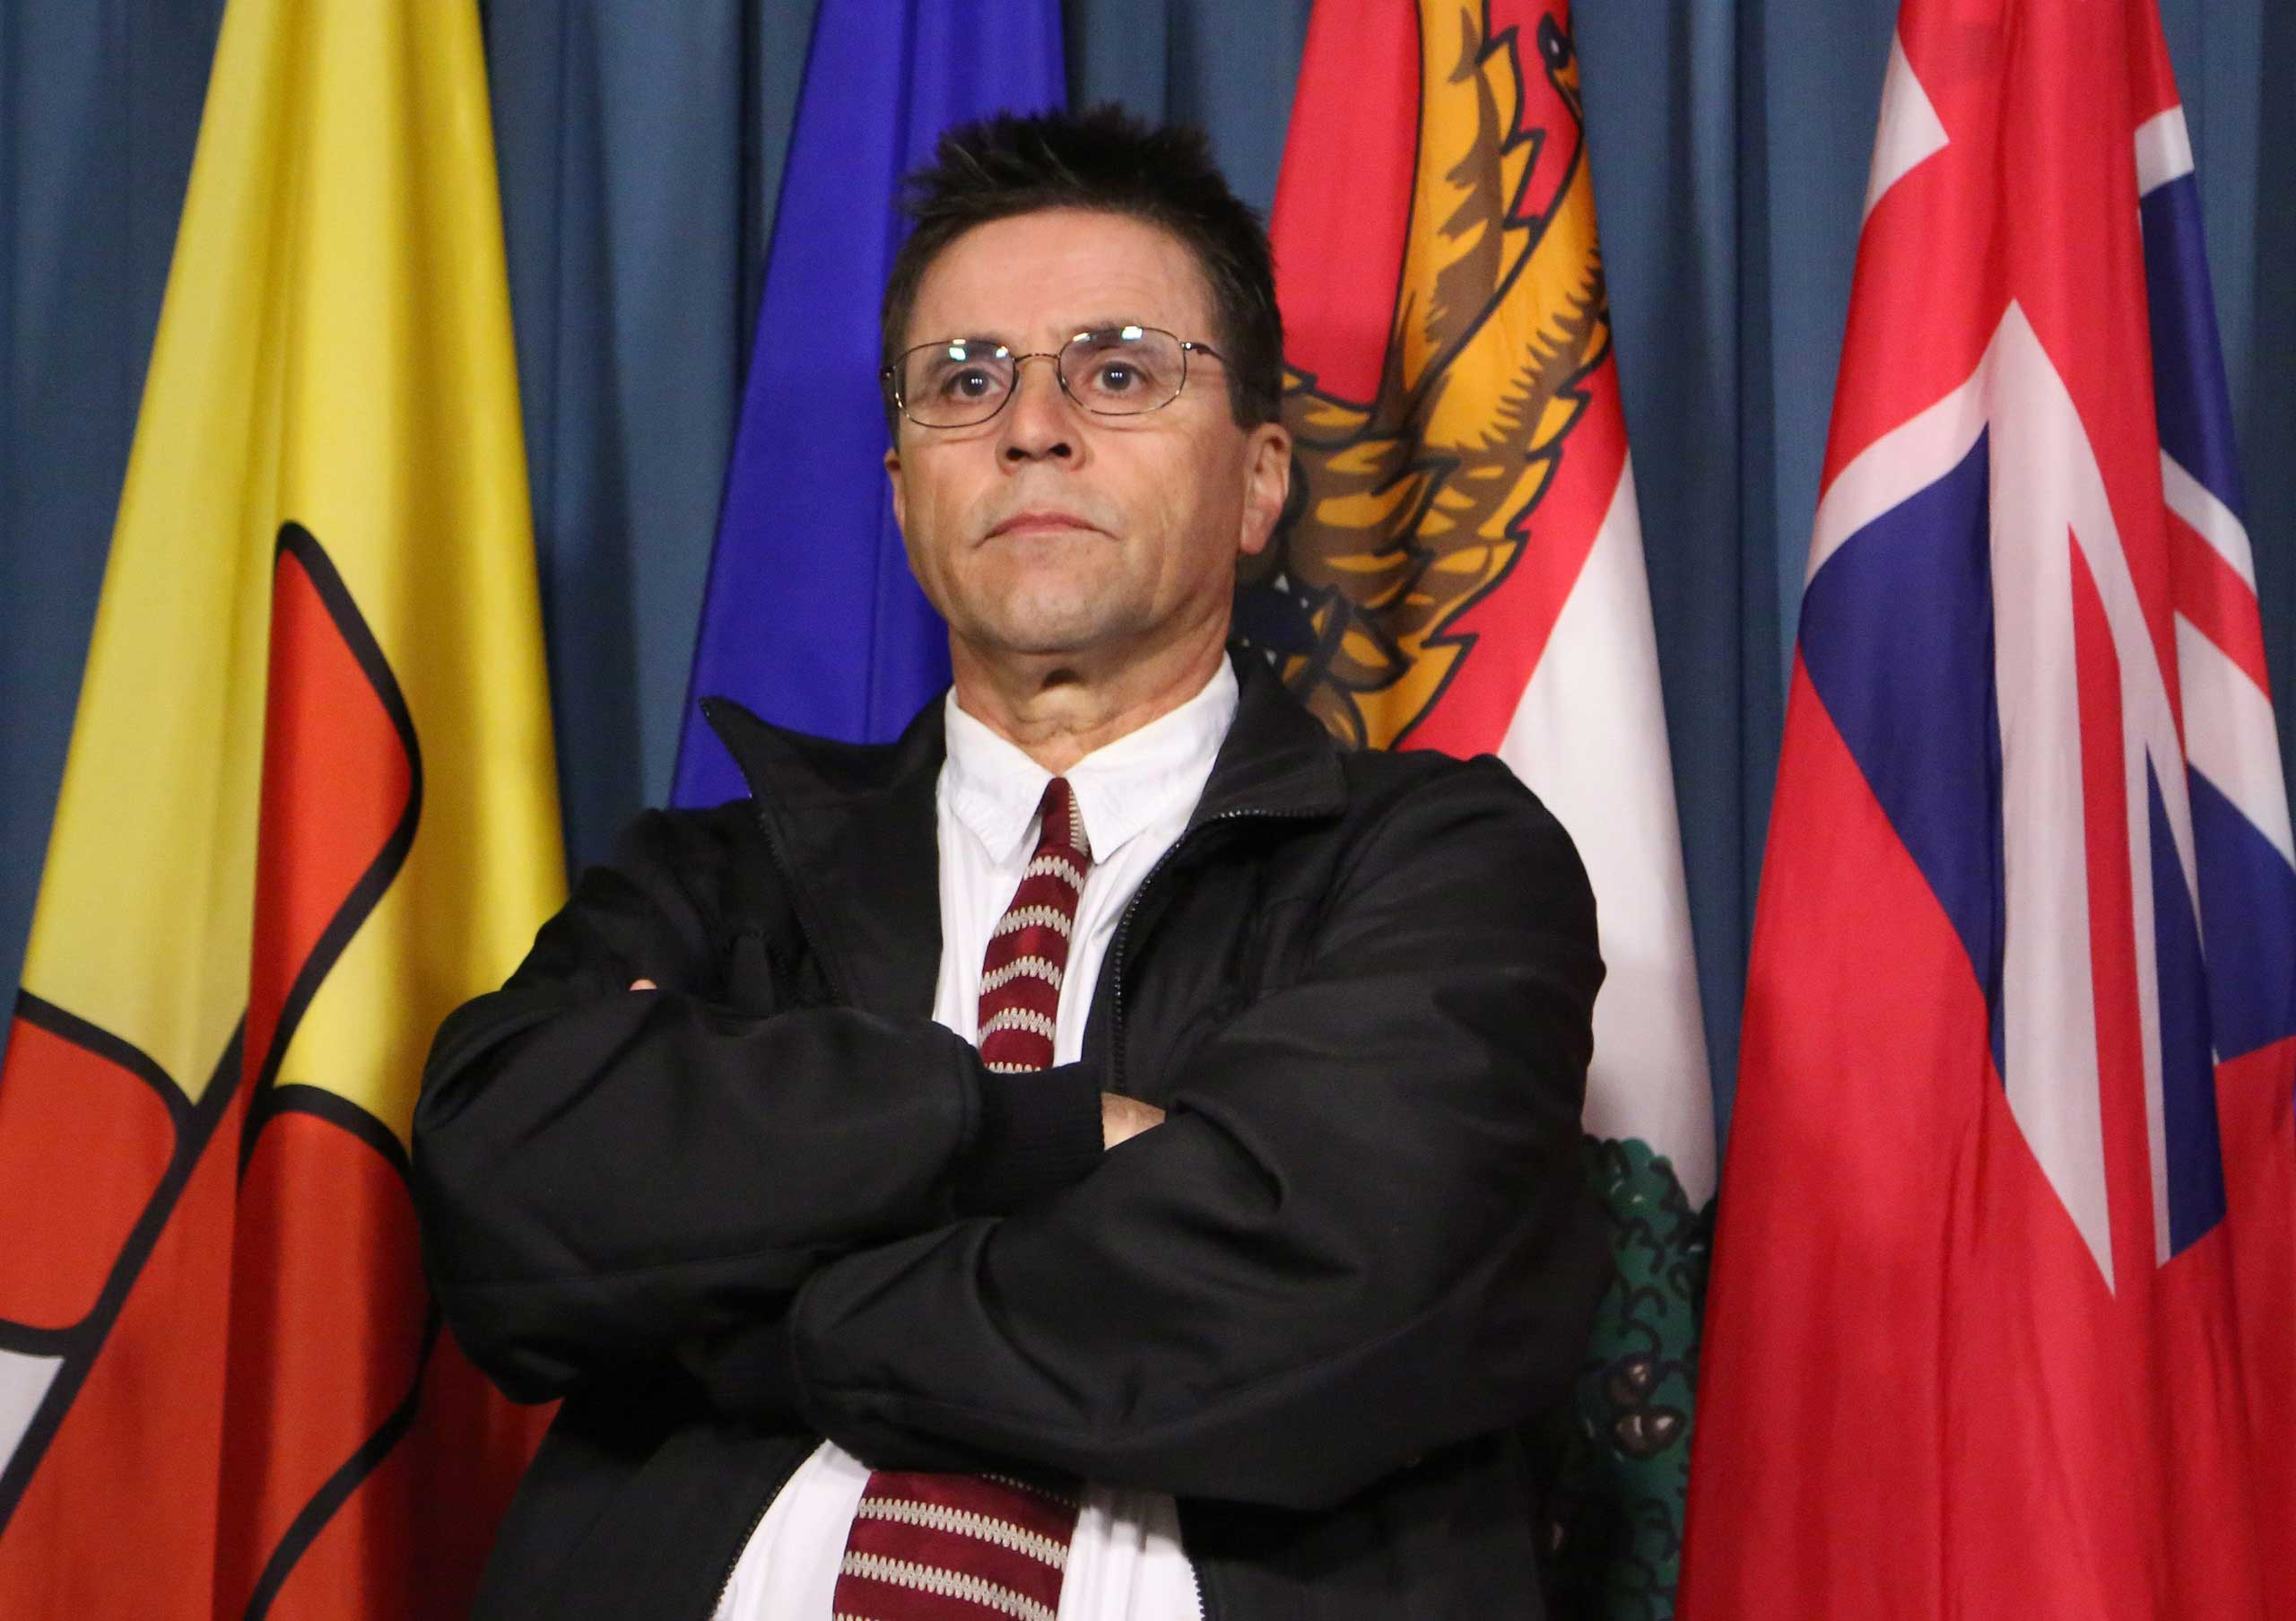 Hassan Diab, the Ottawa professor who has been ordered extradited to France by the Canadian government, listens to his lawyer speak at a press conference on Parliament Hill in Ottawa, April 13, 2012.